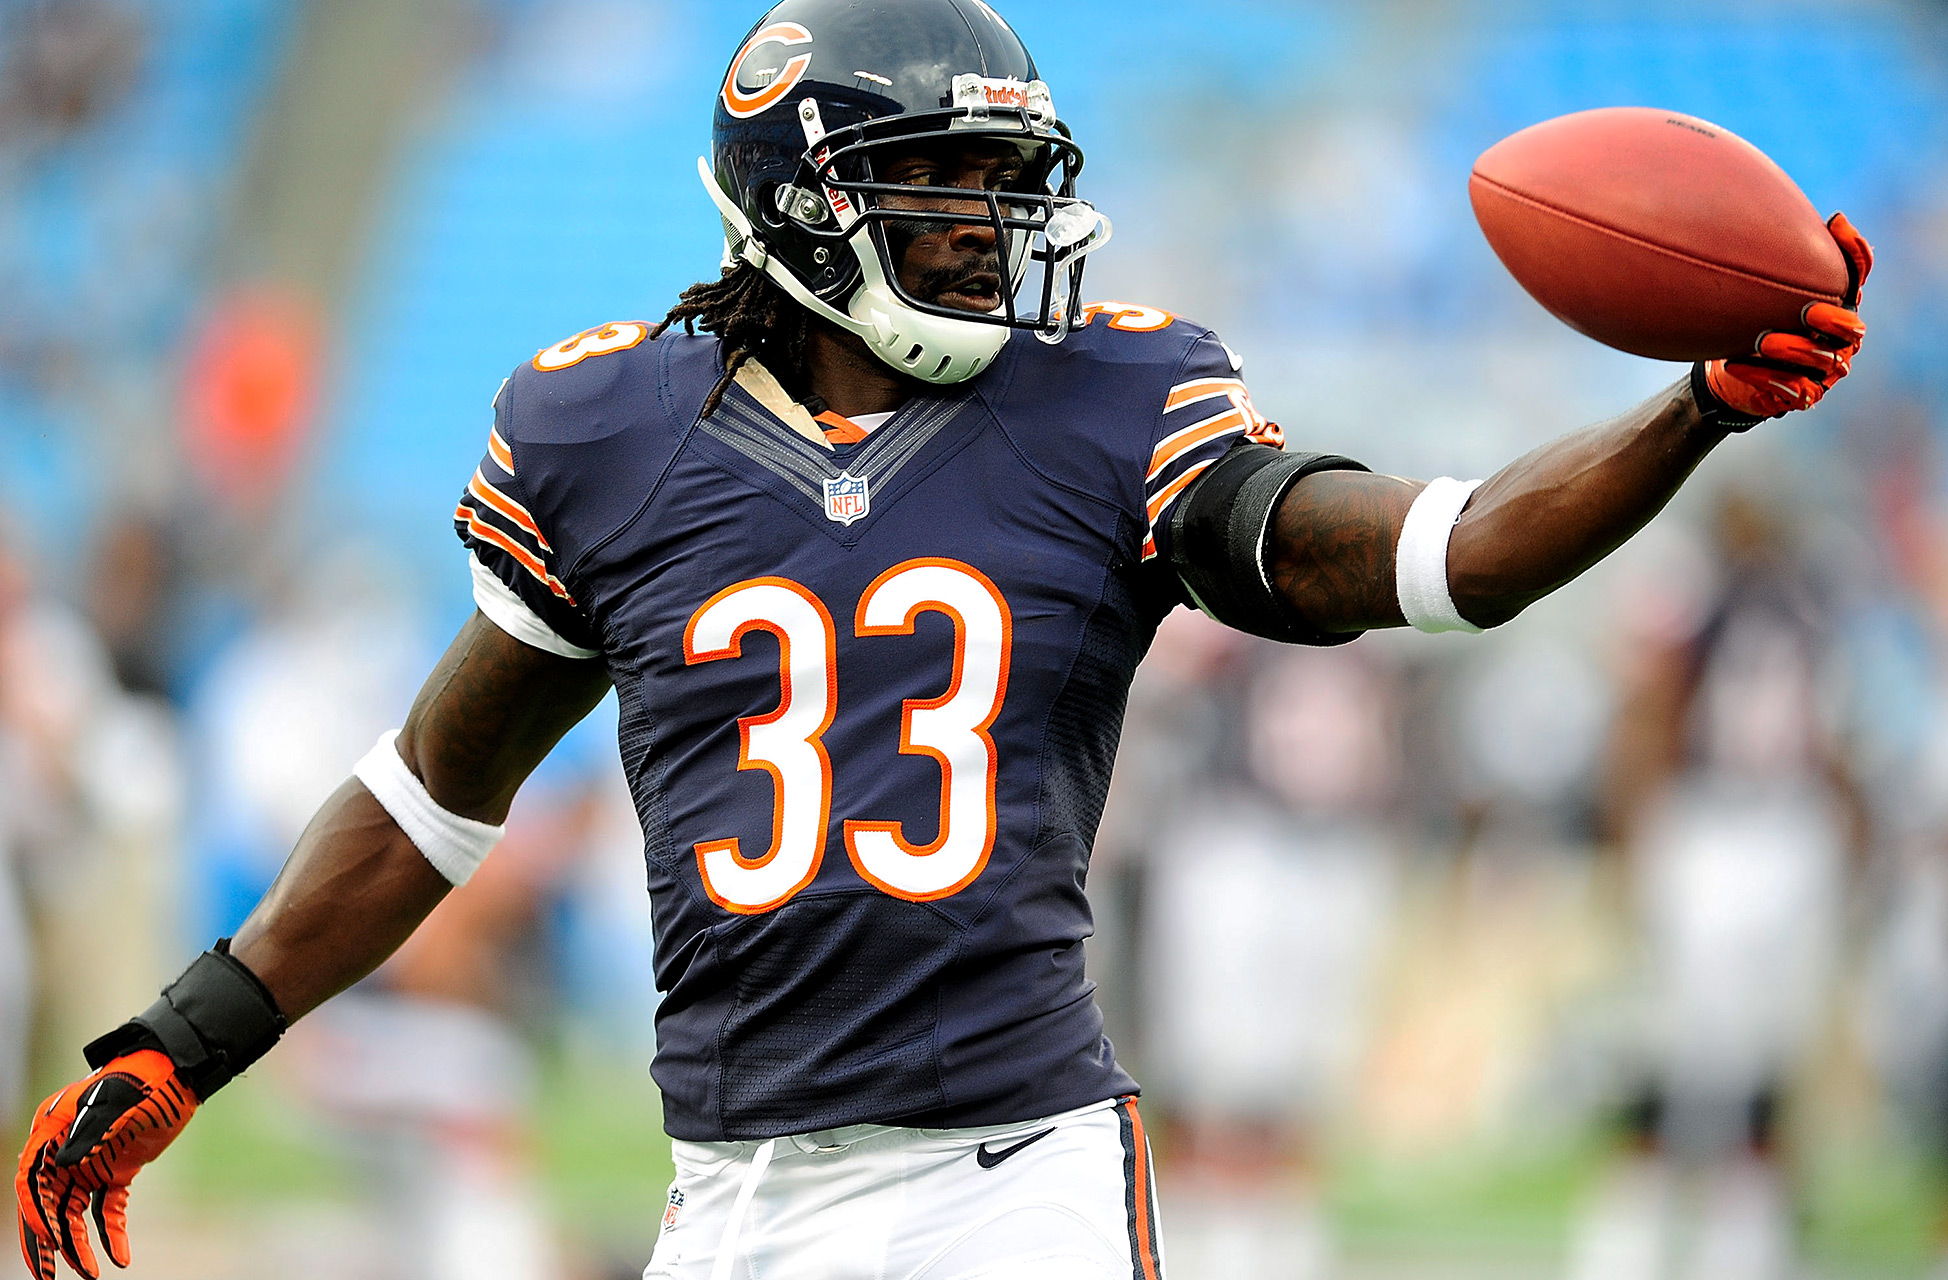 Charles Tillman of the Chicago Bears